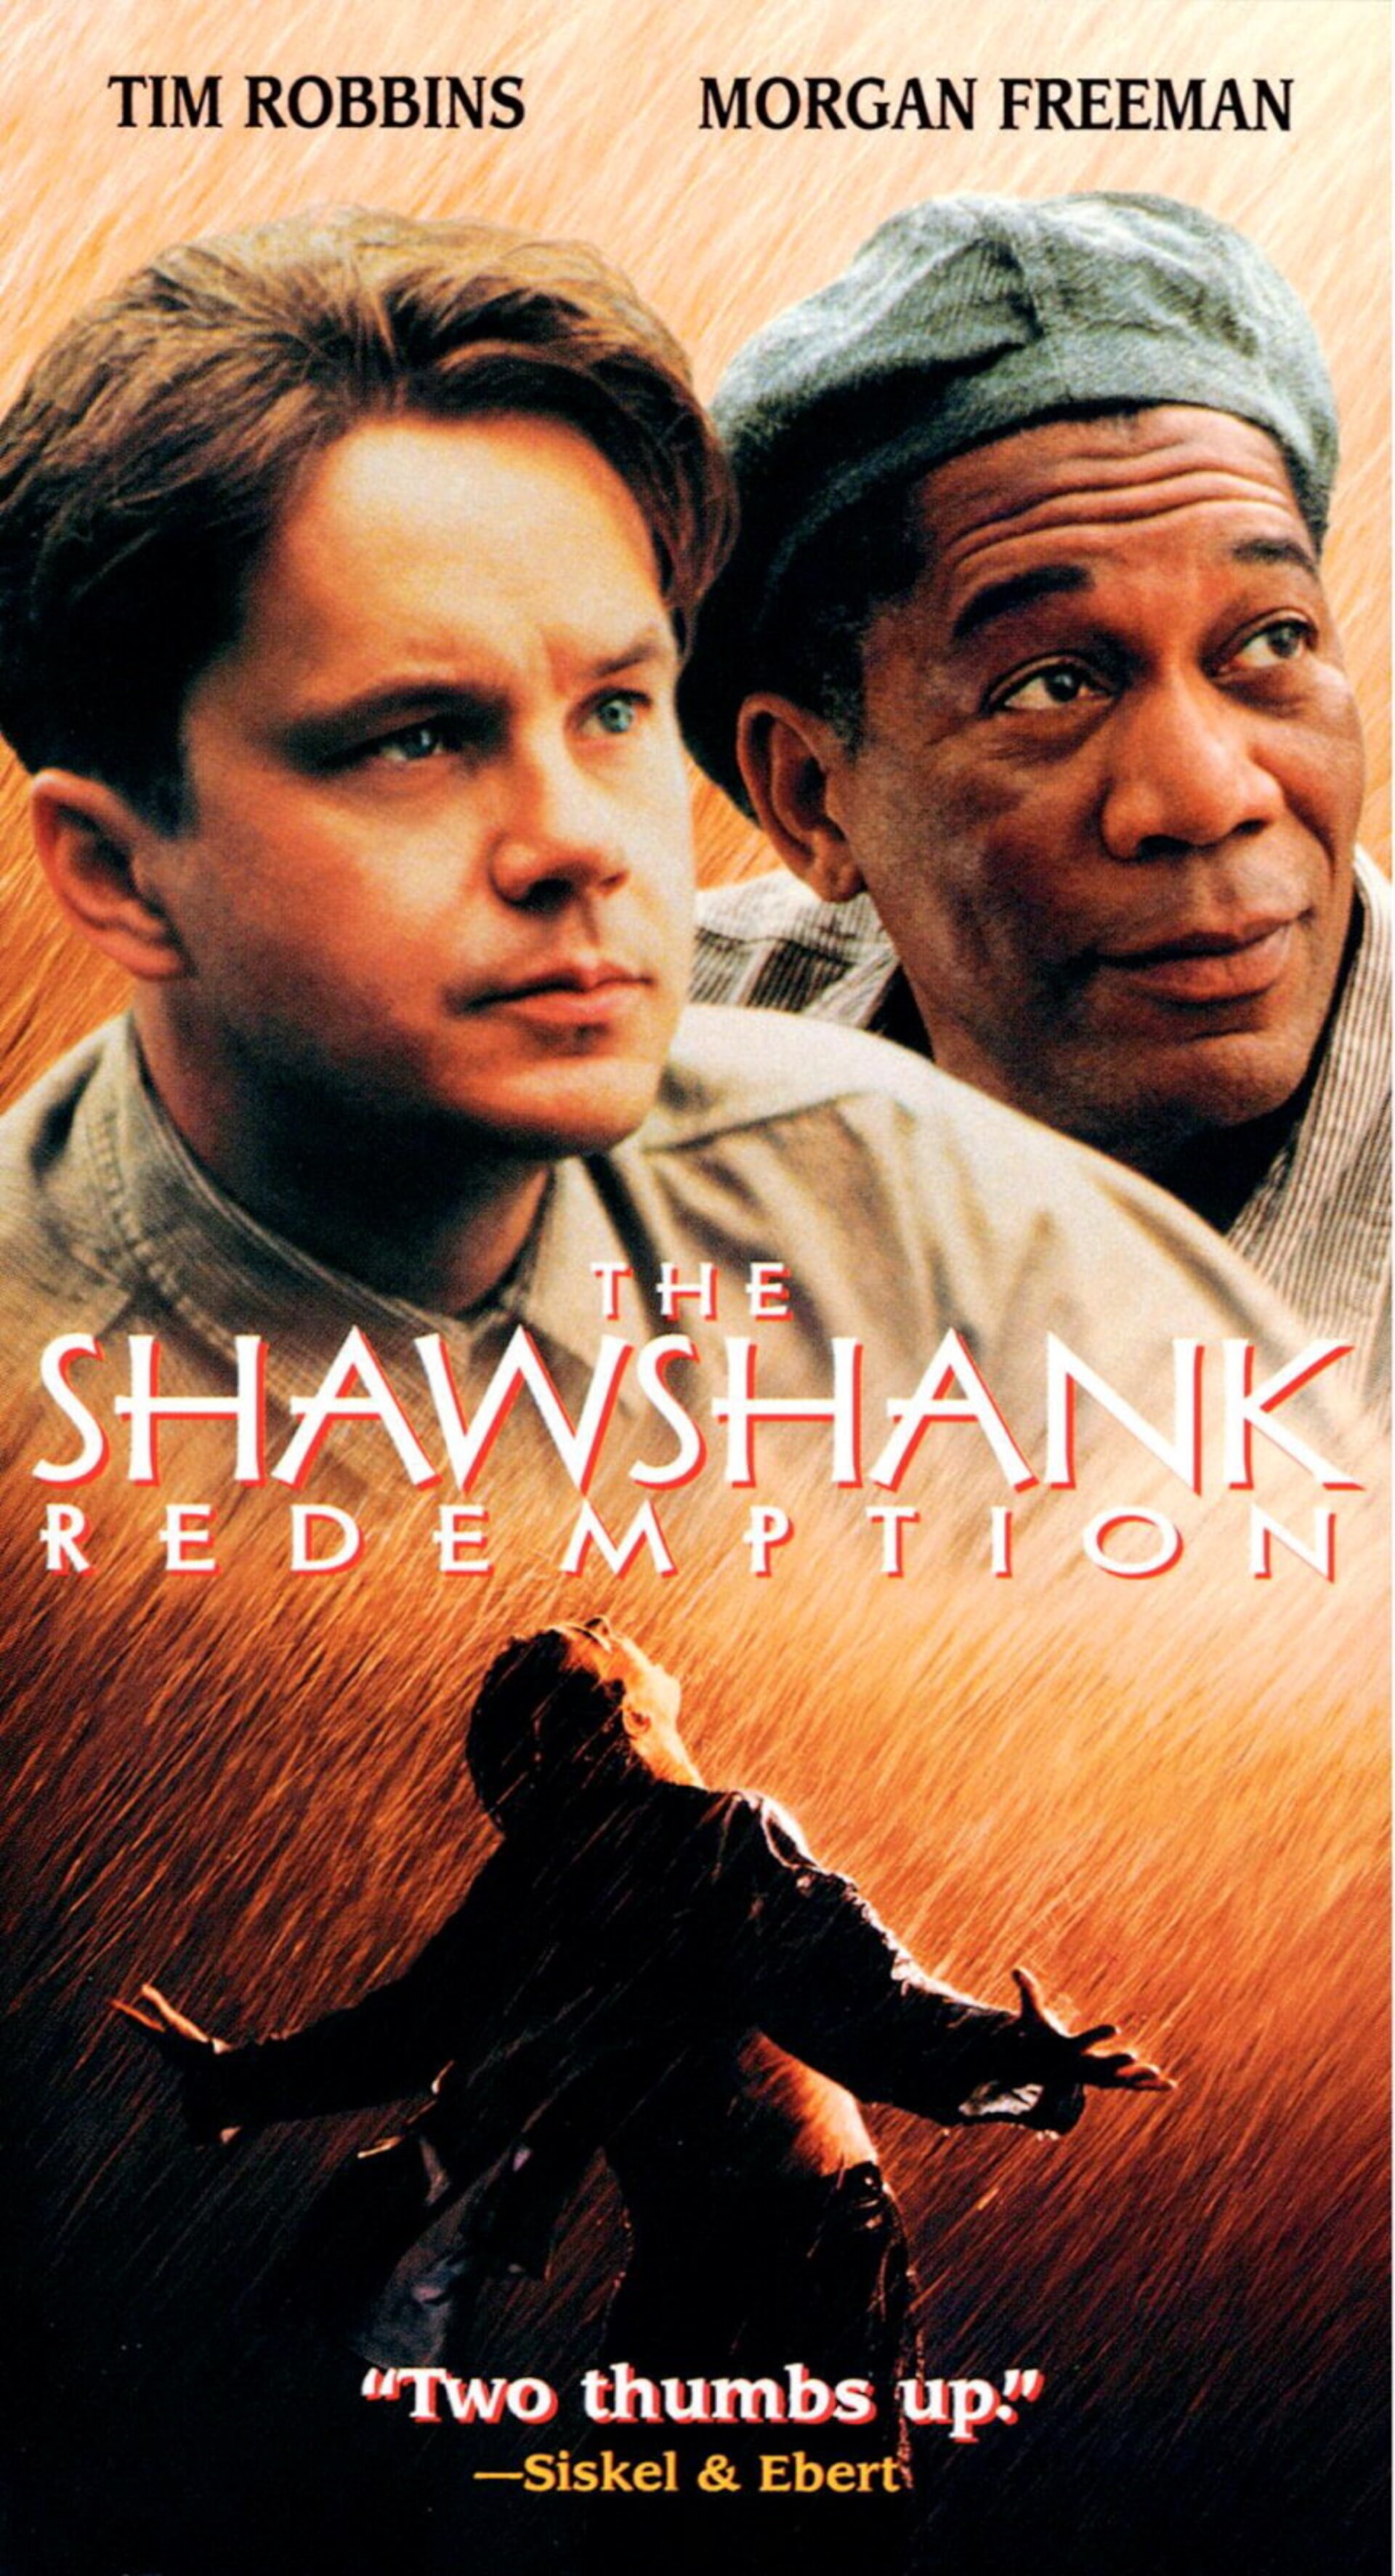 The Shawshank Redemption - Poster 1